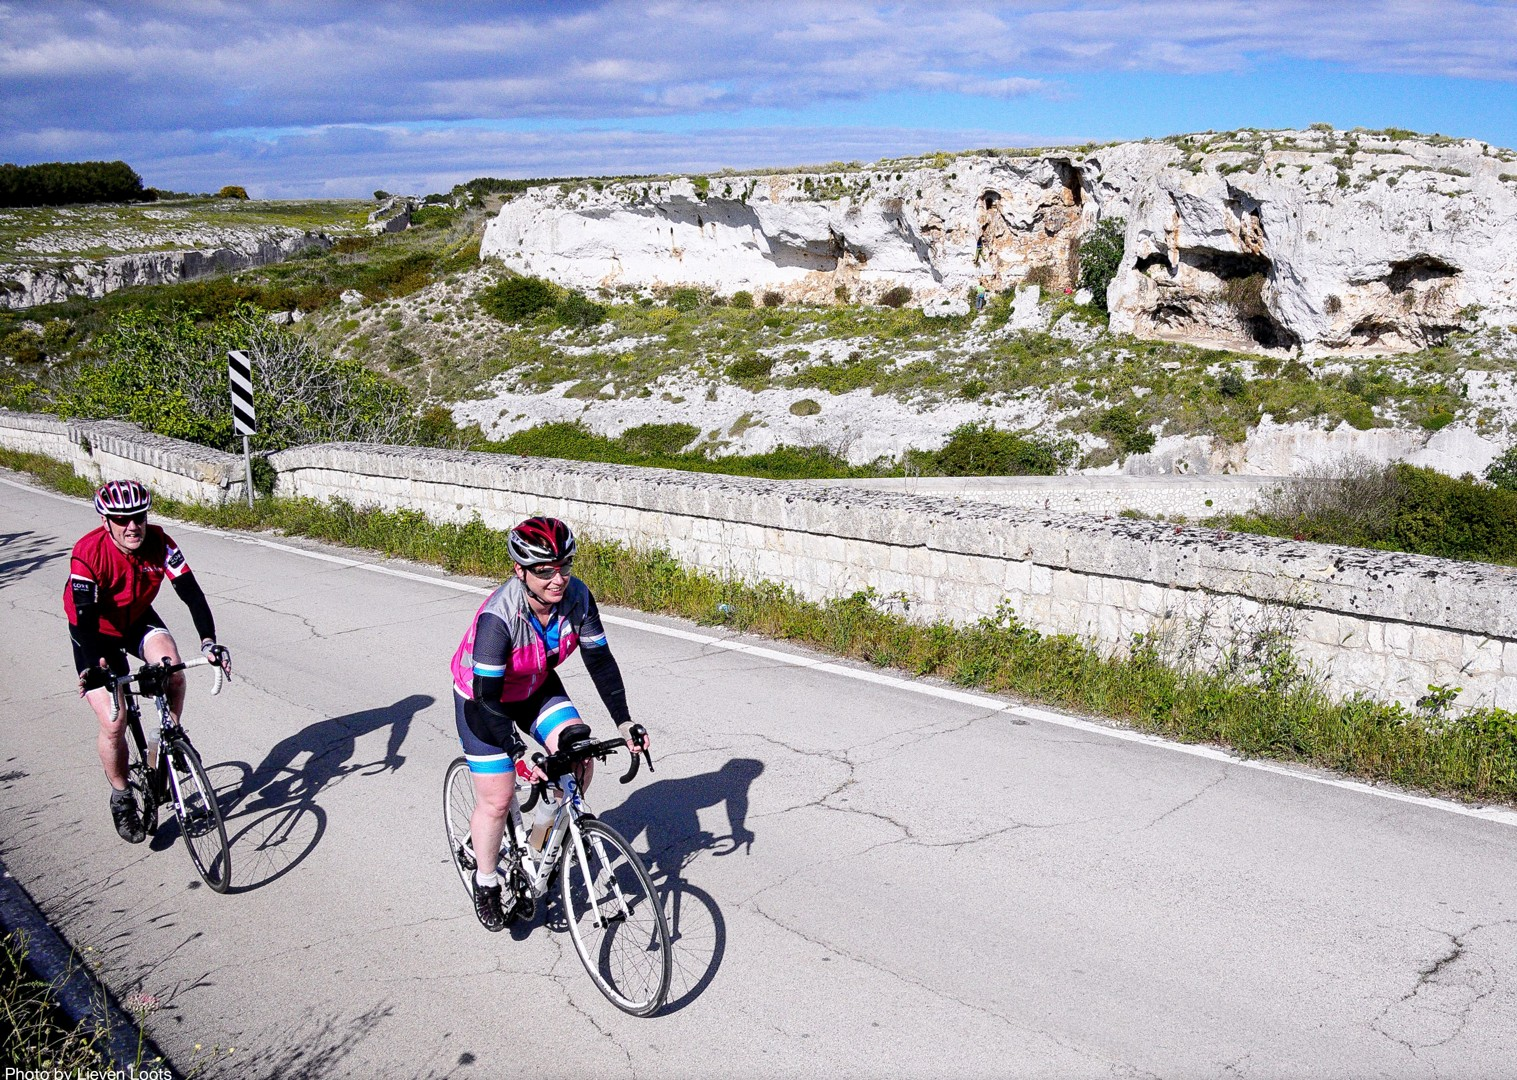 cycling-holiday-in-puglia-italy.jpg - Italy - Puglia - The Beautiful South - Road Cycling